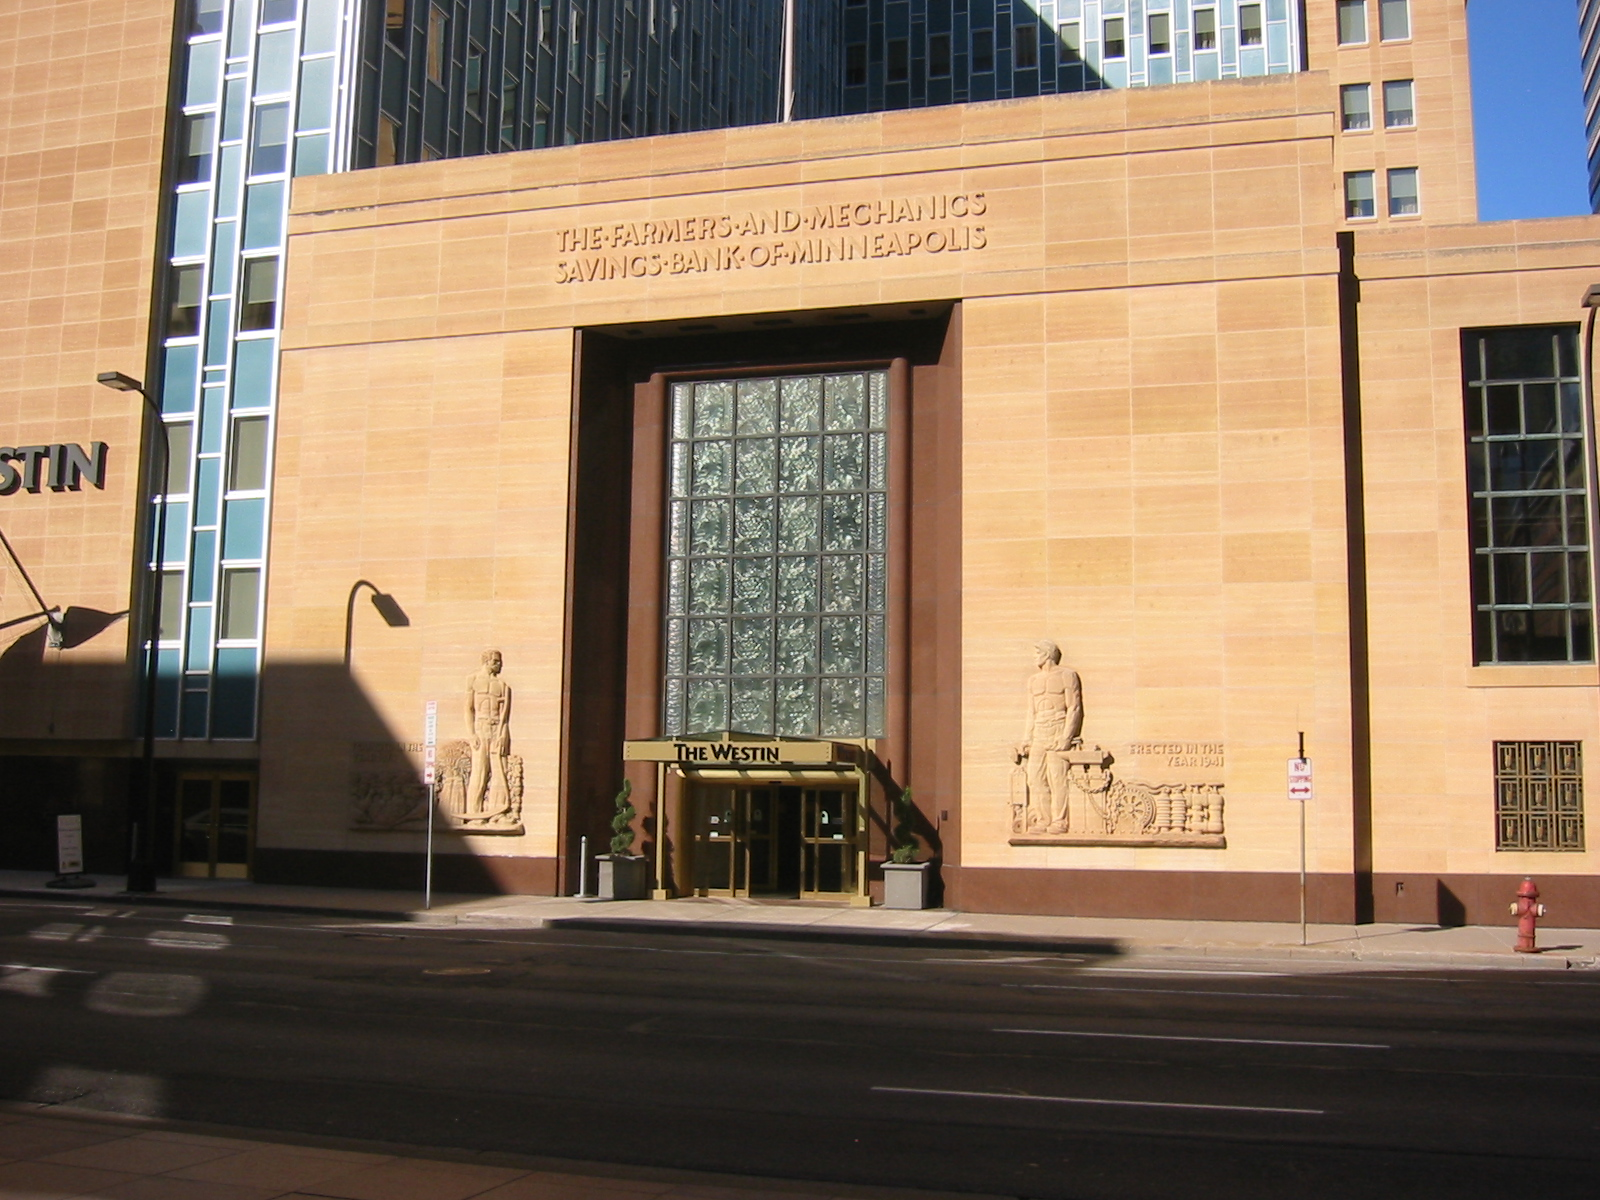 The F&M entrance, now the Westin Hotel entrance, includes carvings depicting farmers and workers.